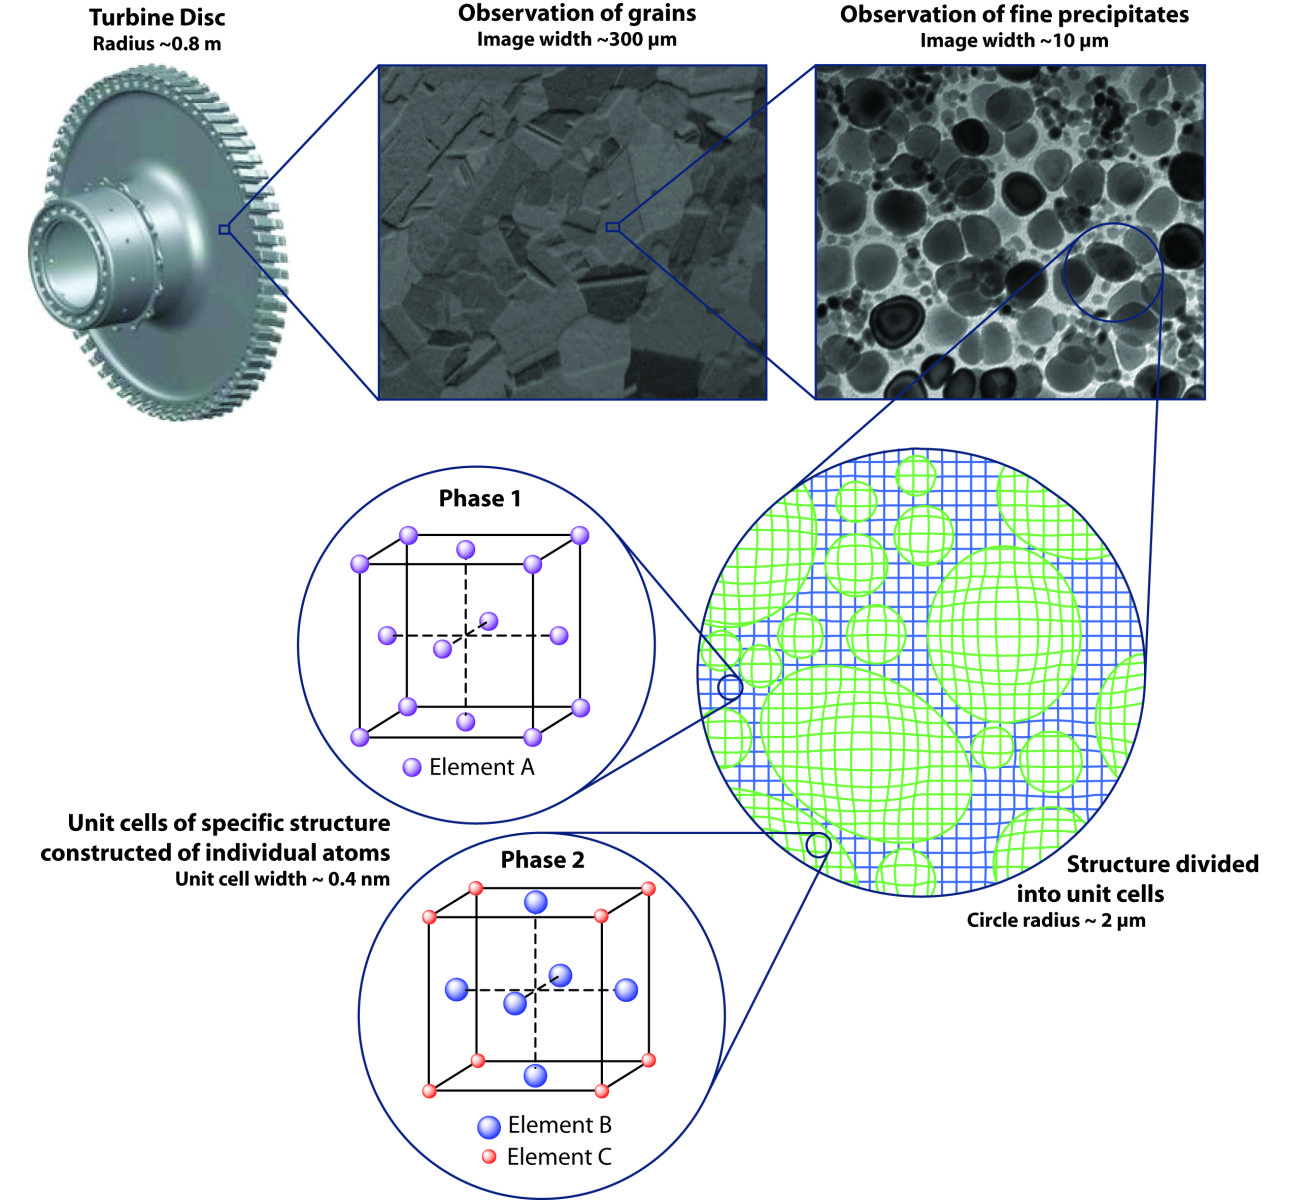 Figure 2: From a huge turbine disc, magnifying reveals important features of the material that are carefully controlled and designed by a metallurgist. These features range from grain structure, precipitation, phasestructure or to individual unit...